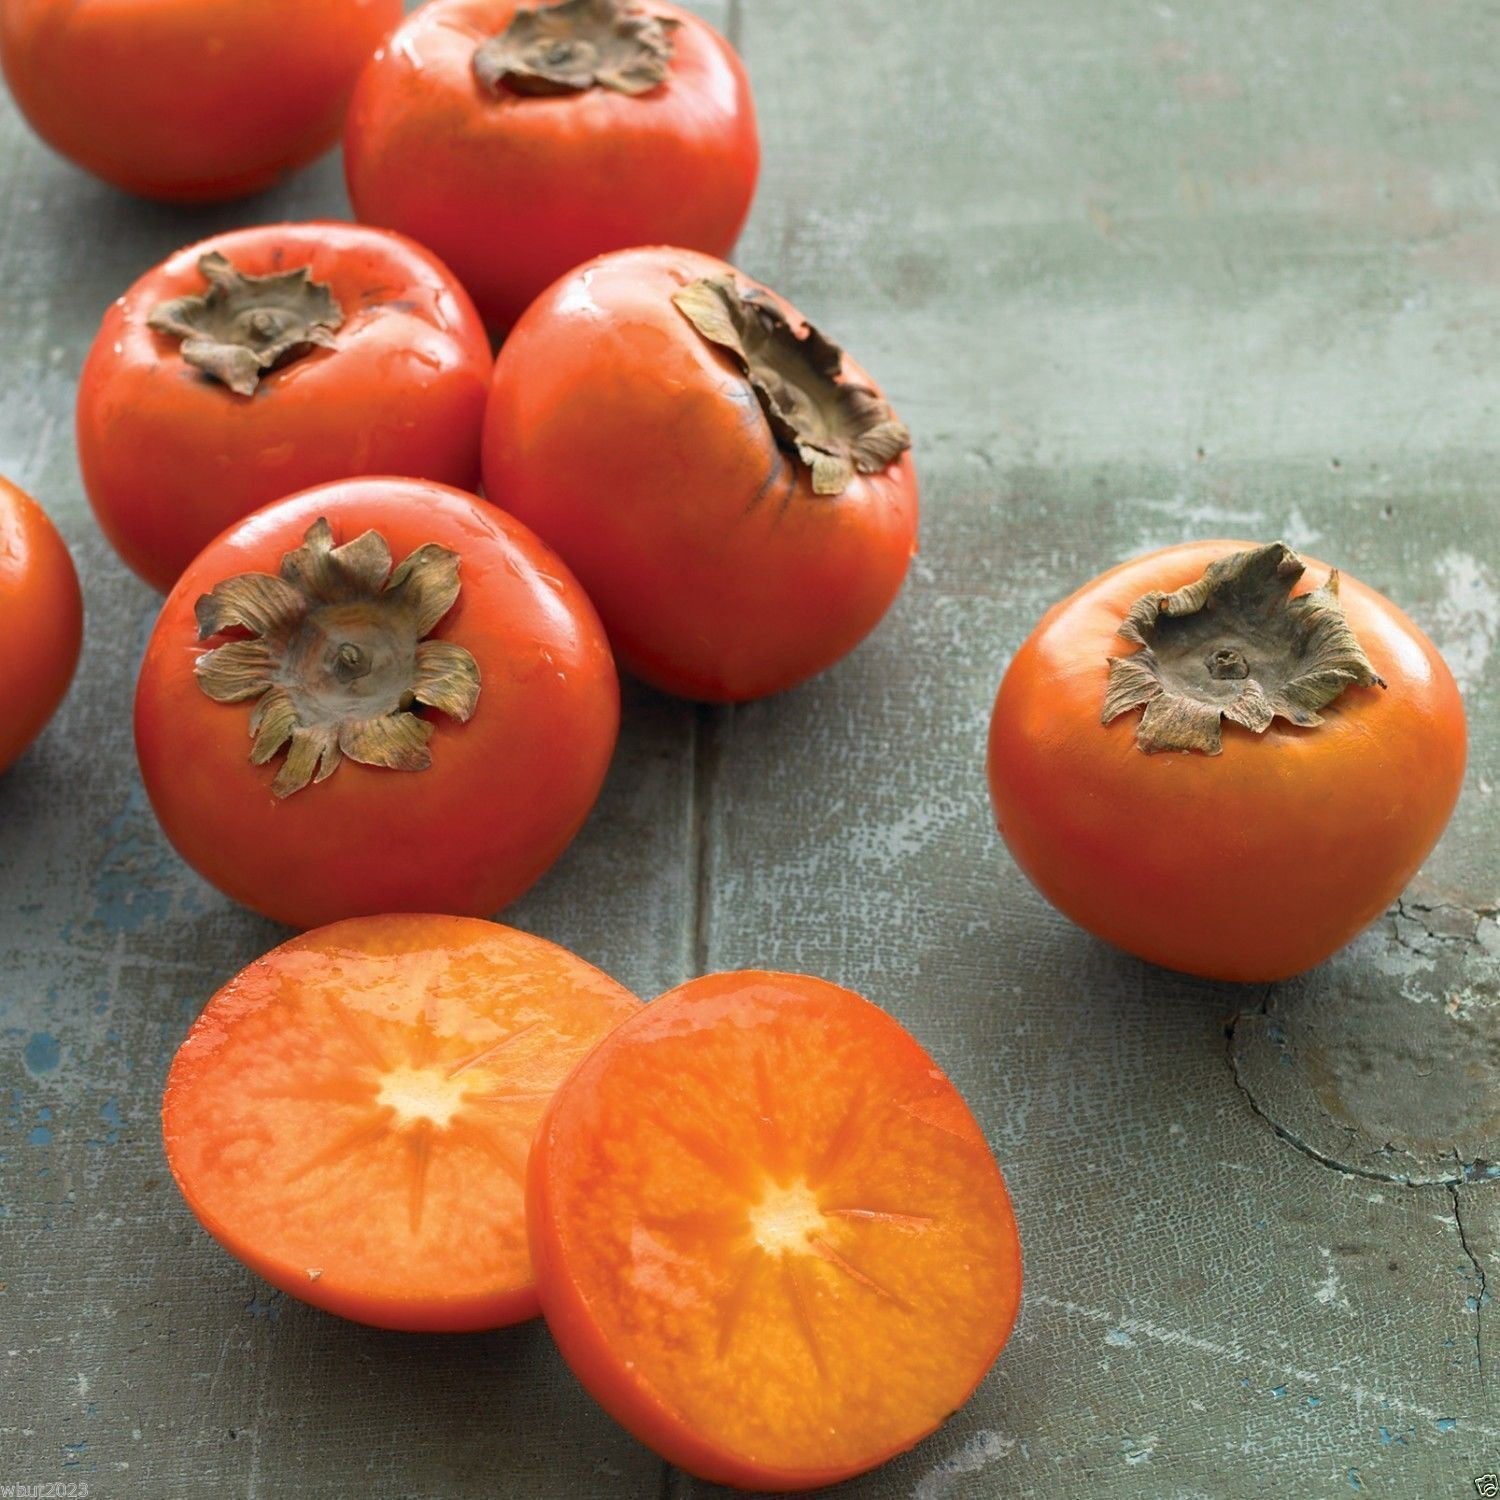 SHIPPED From US_American Persimmon, Diospyros virginiana Seeds 30 SEEDS-WB